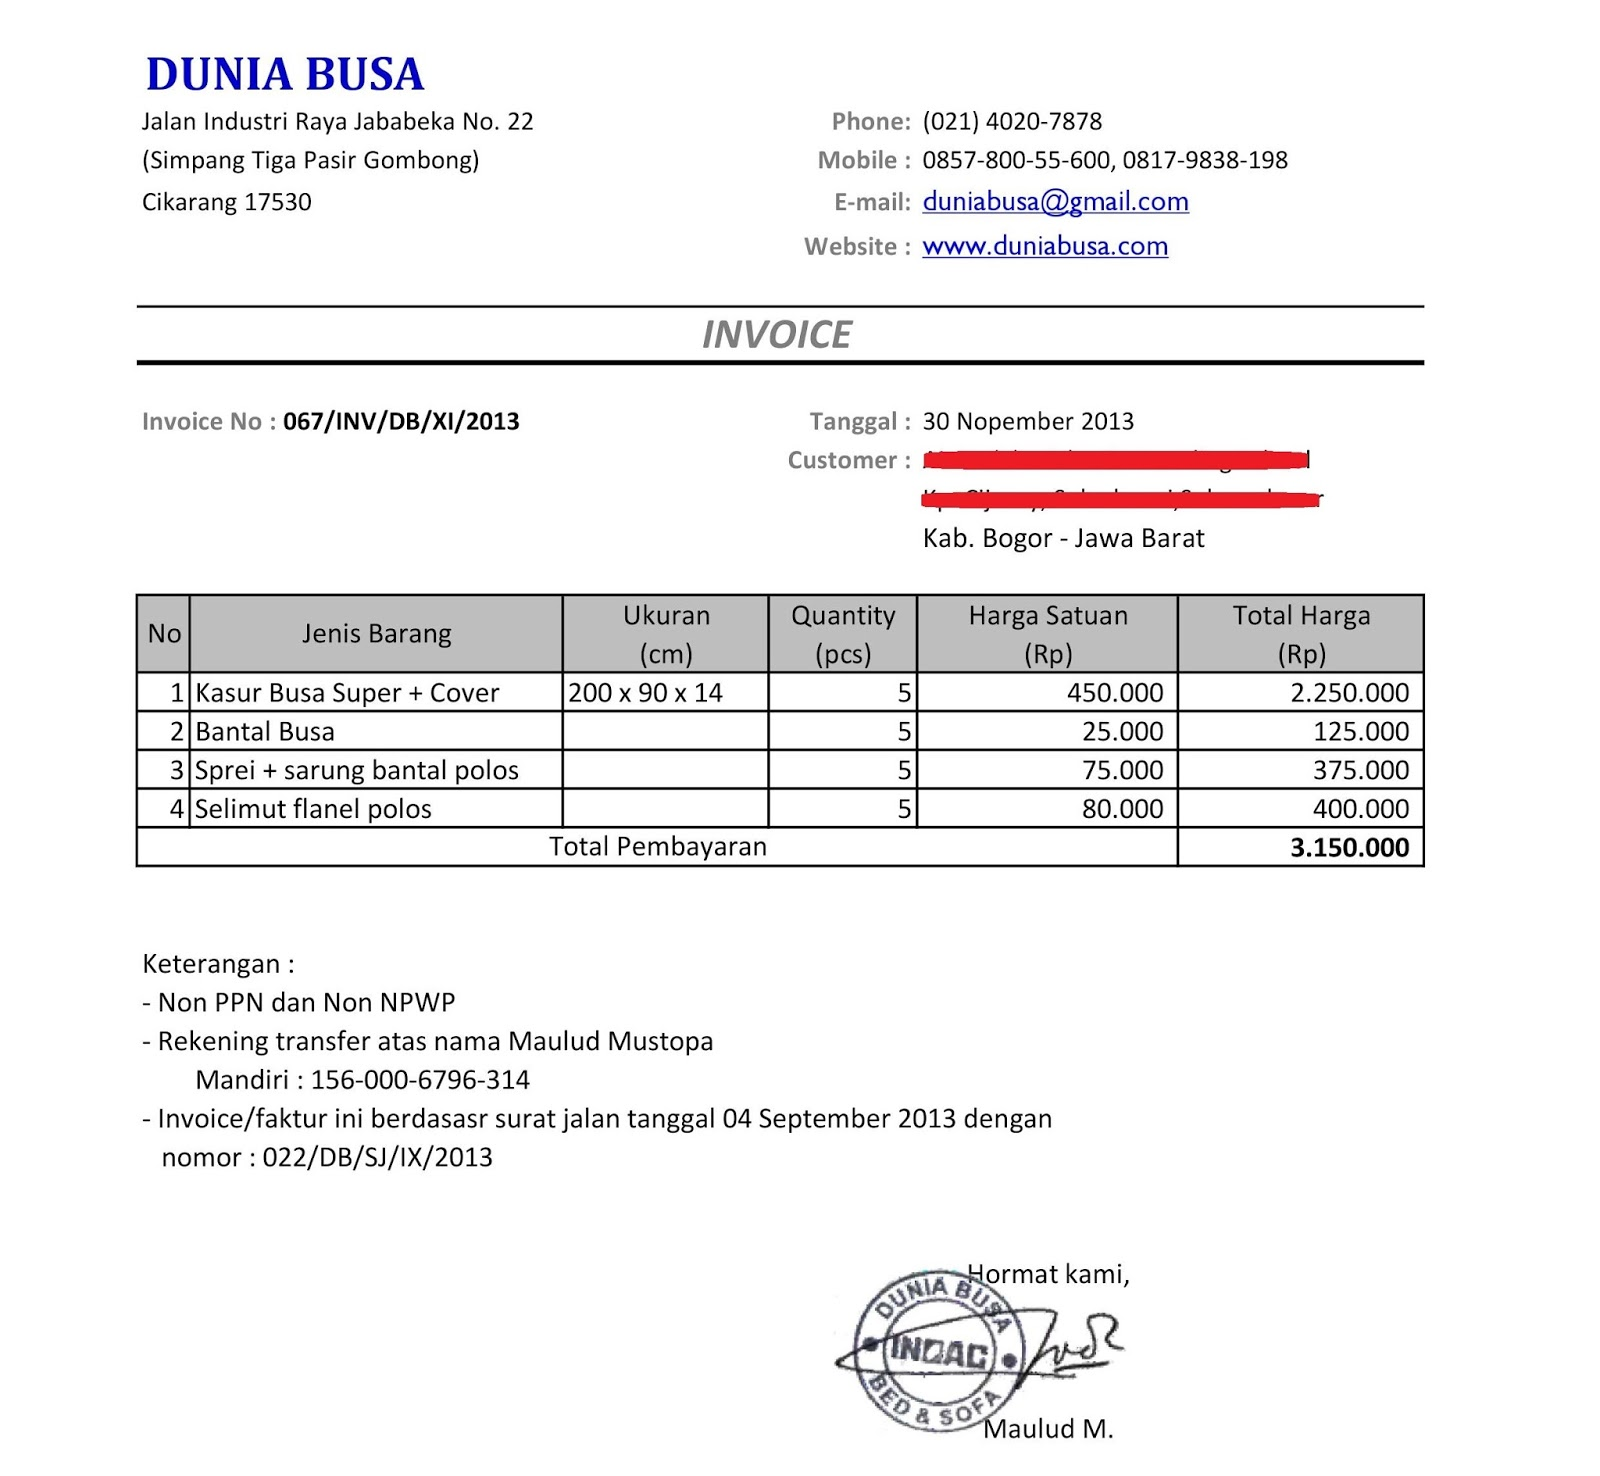 Usdgus  Winning Free Invoice Online  Create Invoice Online  Invoice Template  With Likable Contoh Format Invoice Atau Surat Tagihan  Brankas Arsip  Free Invoice Online With Delightful Invoice Discounting Definition Also Vat Number On Invoice In Addition Payment Terms For Invoices And Digital Invoicing As Well As Sample Of An Invoice For Services Additionally Late Payment Of Invoices From Sklepco With Usdgus  Likable Free Invoice Online  Create Invoice Online  Invoice Template  With Delightful Contoh Format Invoice Atau Surat Tagihan  Brankas Arsip  Free Invoice Online And Winning Invoice Discounting Definition Also Vat Number On Invoice In Addition Payment Terms For Invoices From Sklepco